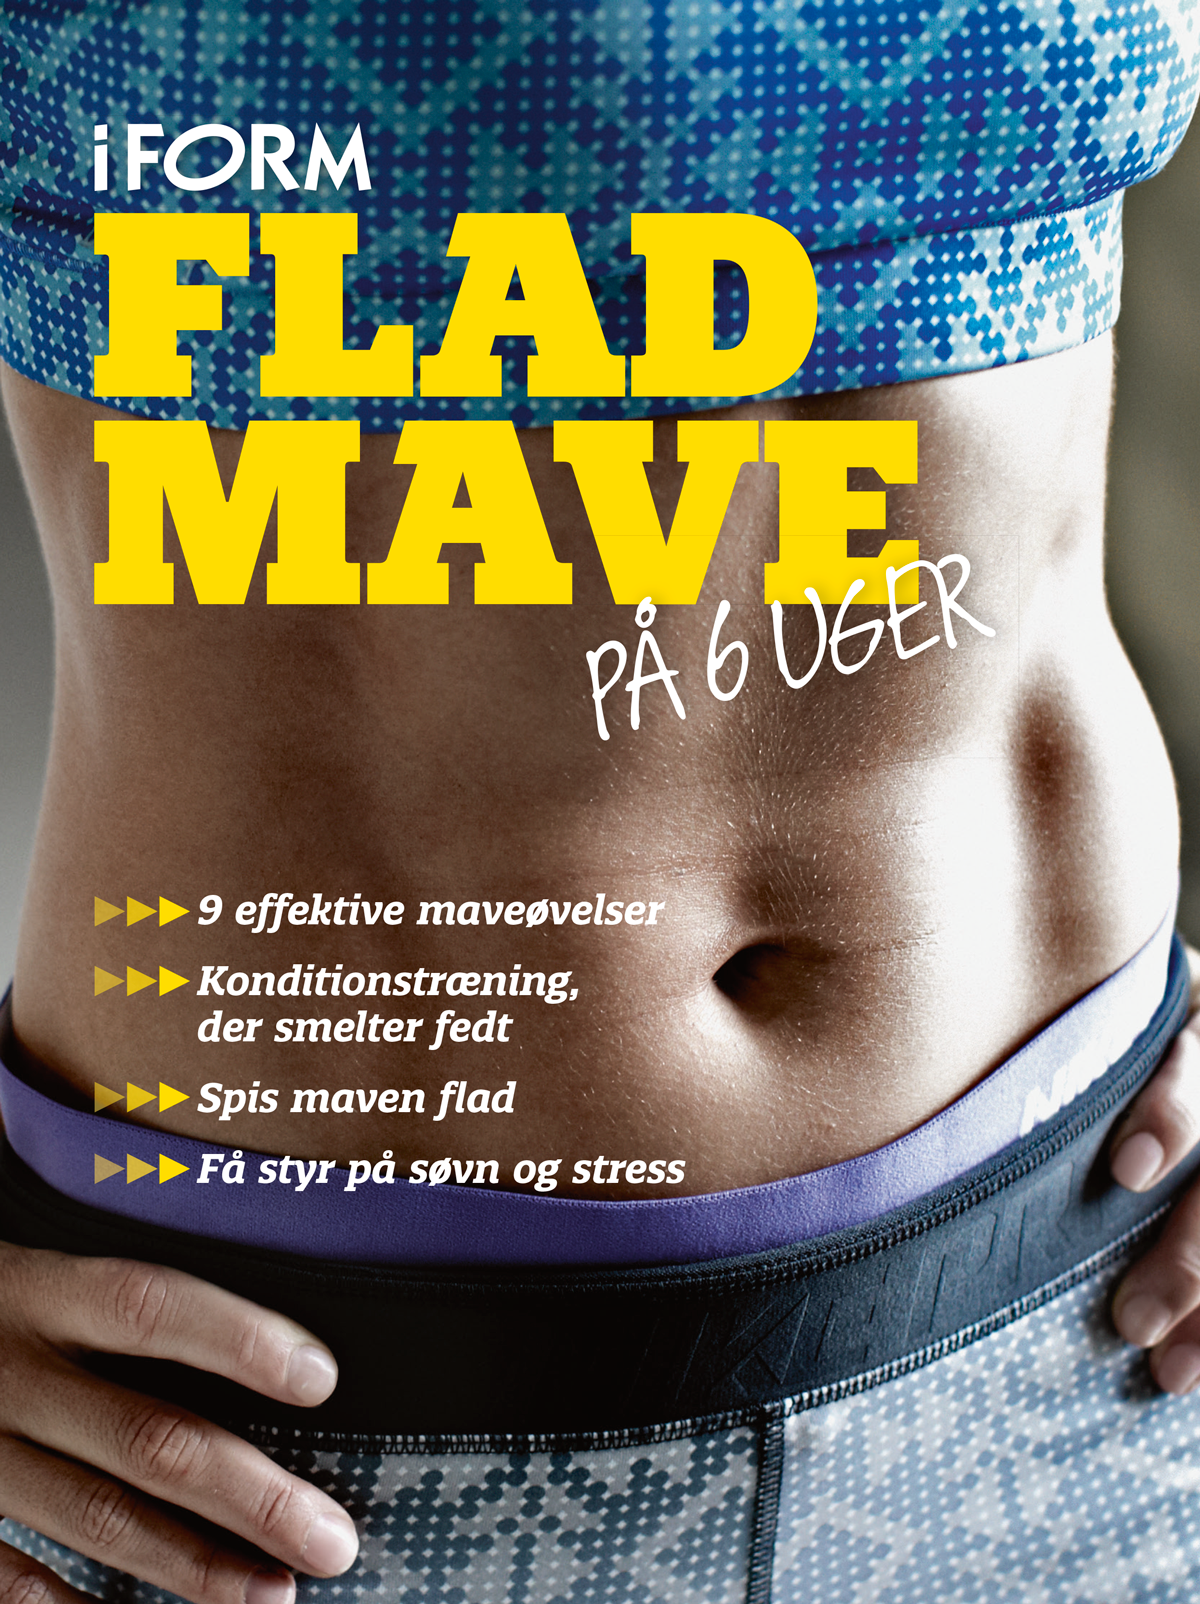 Flad mave I From